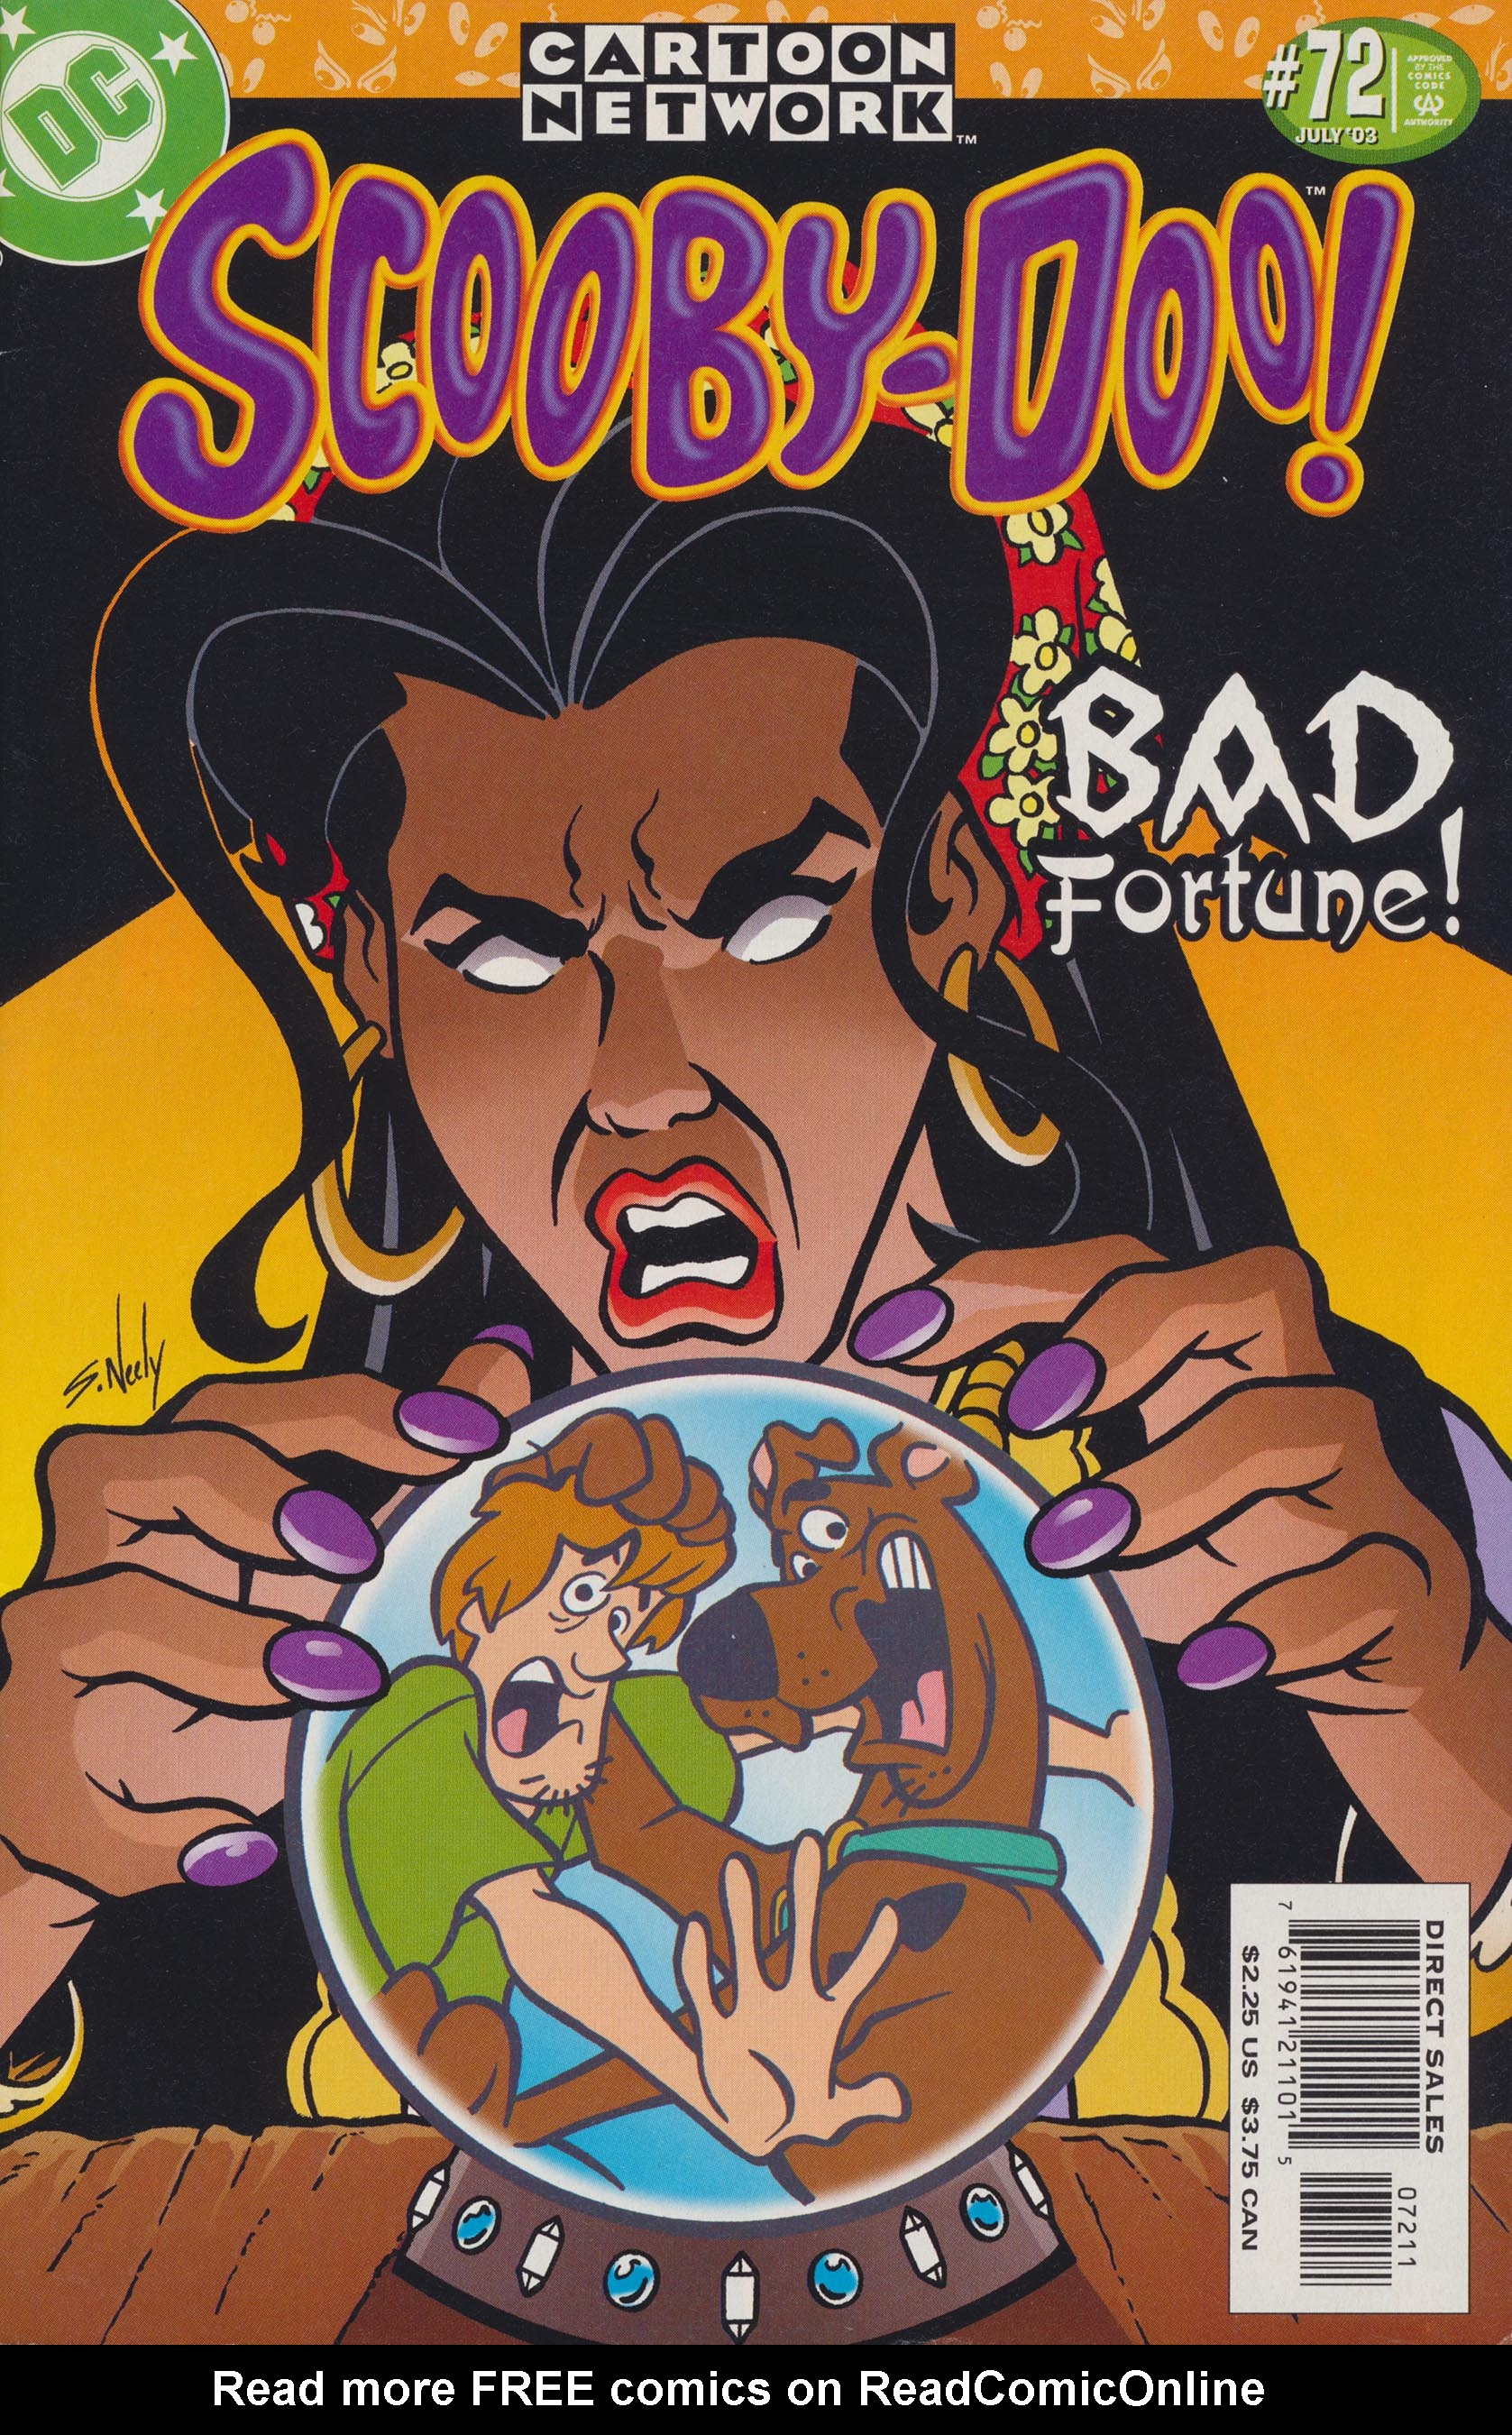 Read online Scooby-Doo (1997) comic -  Issue #72 - 1